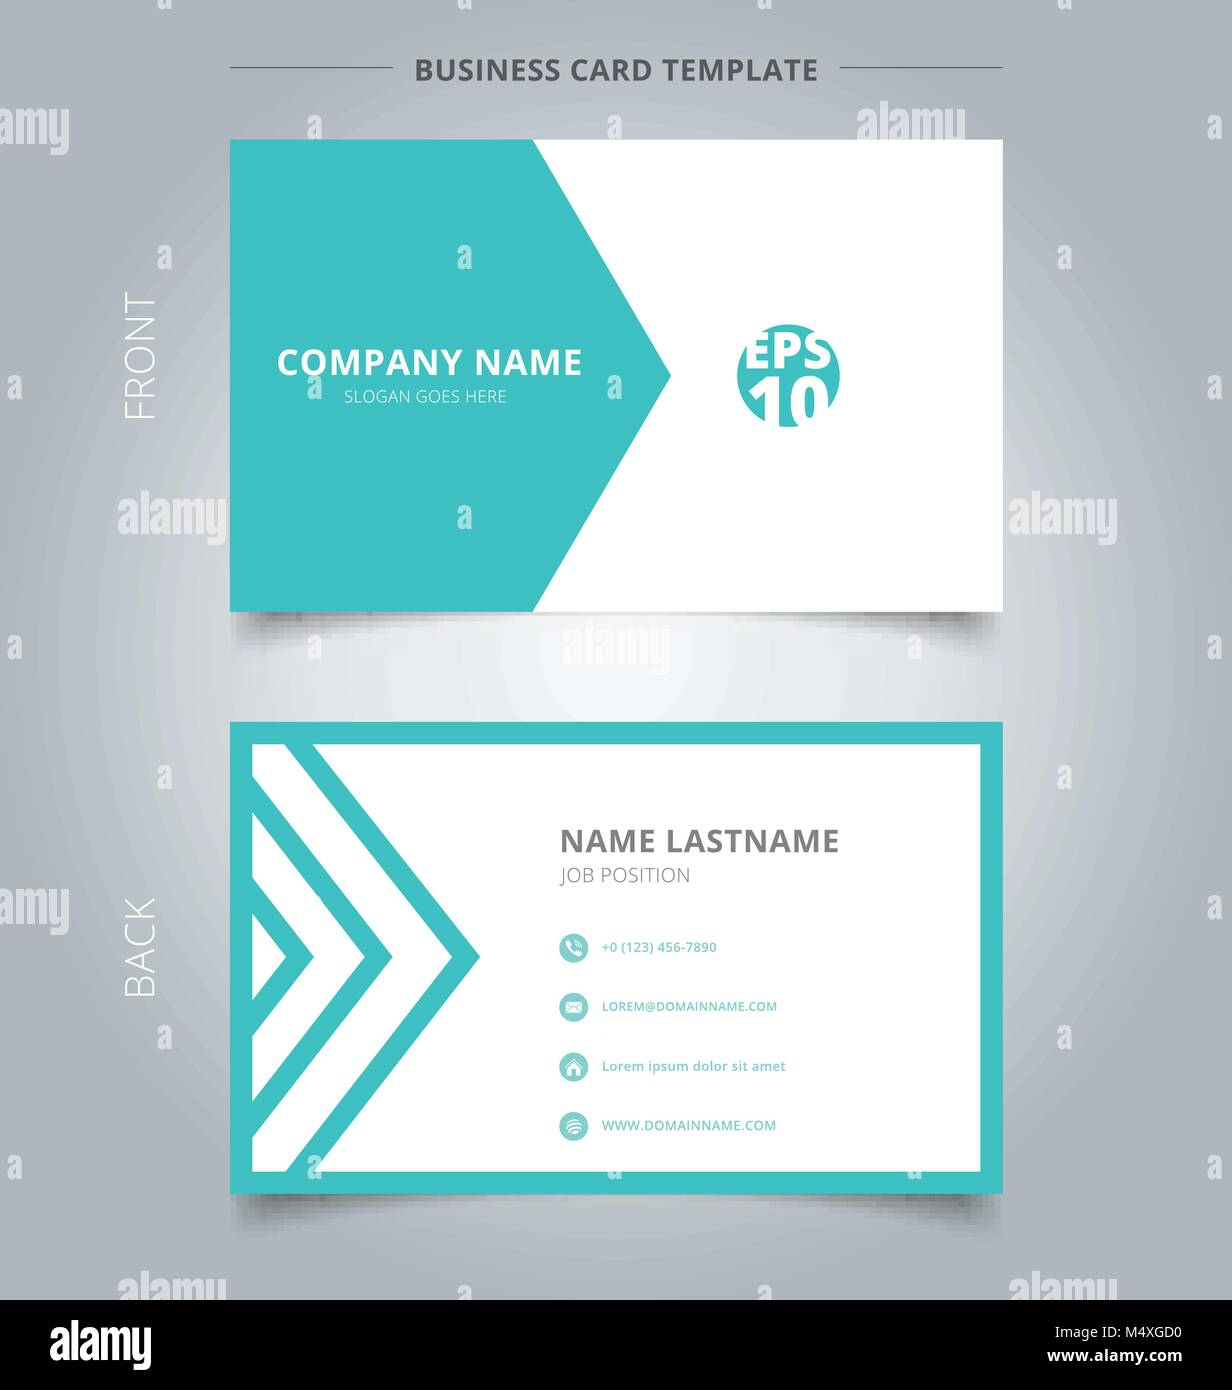 Creative business card and name card template green and white Stock ...